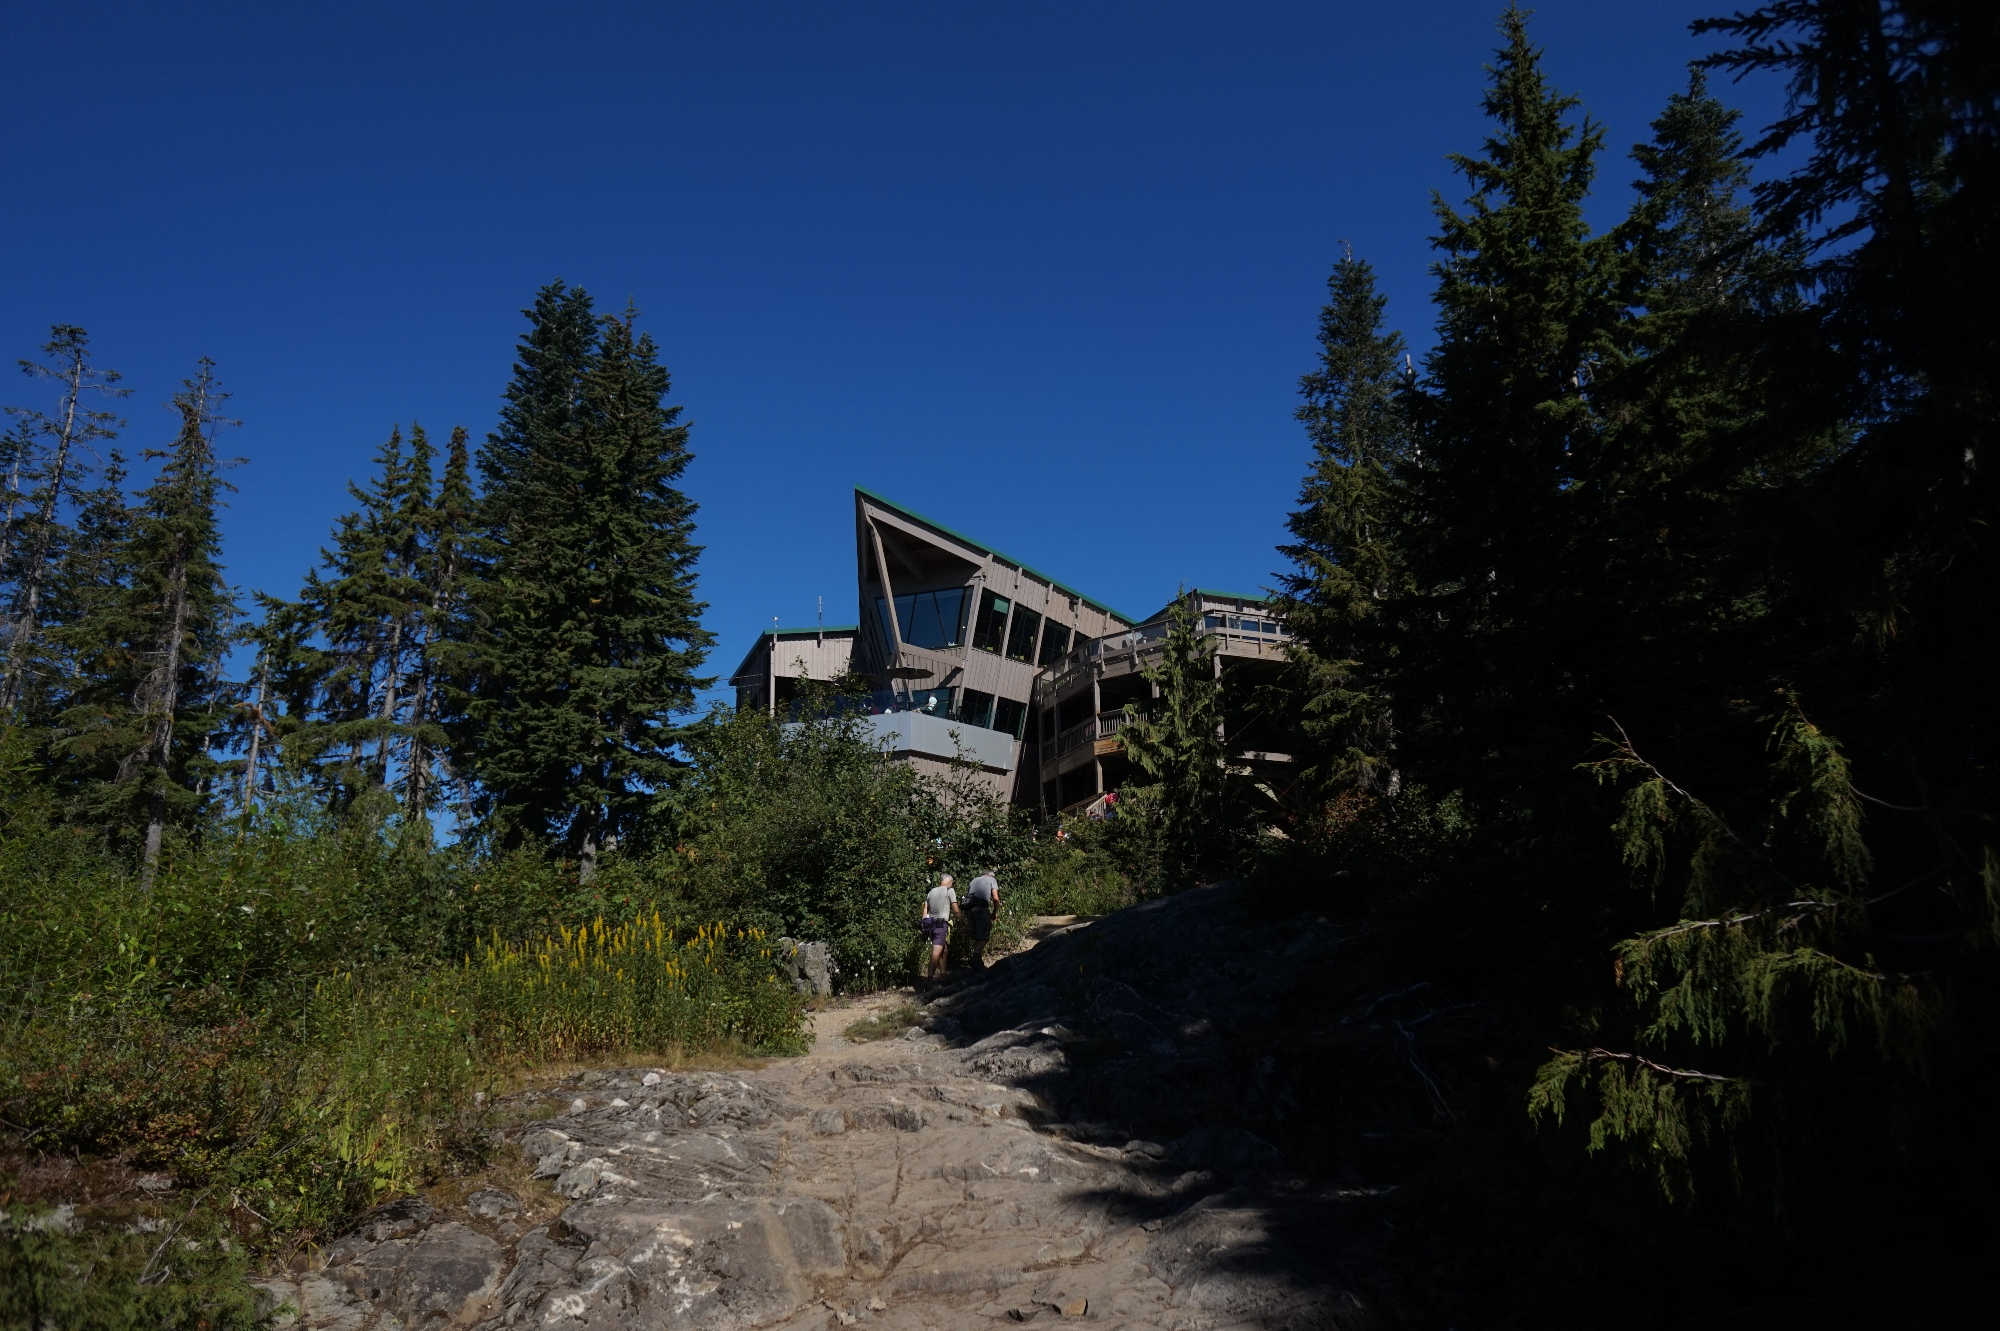 Das Peak Chalet am Grouse Mountain.